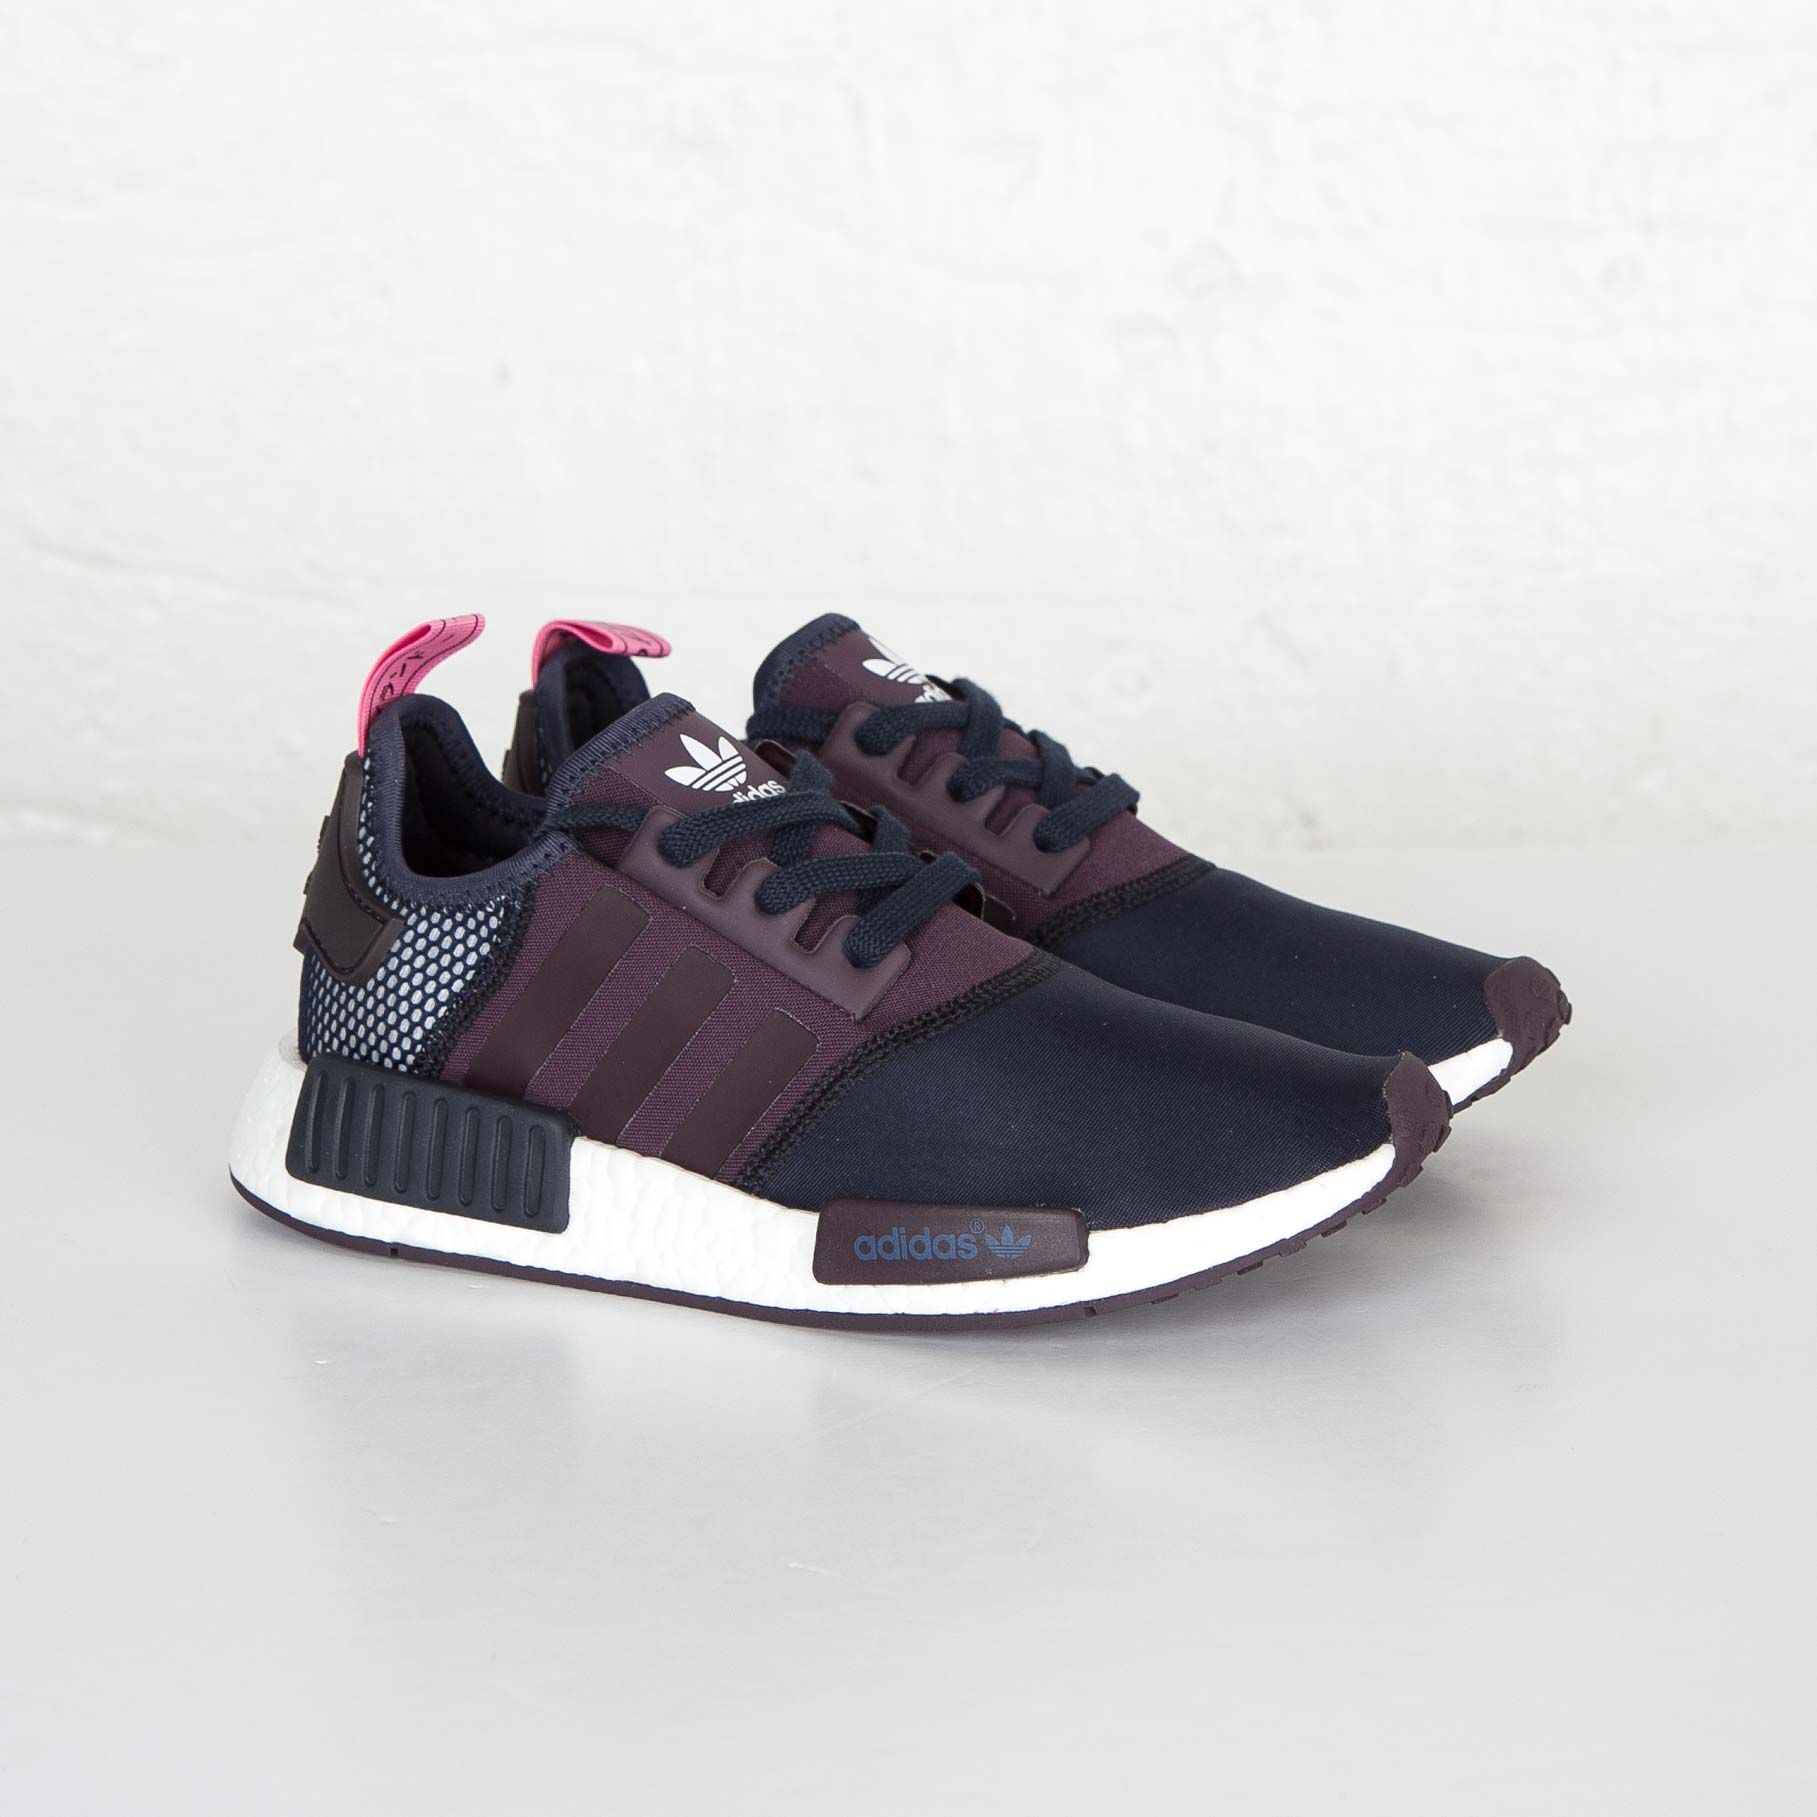 adidas nmd runner for sale adidas superstar womens black and gold